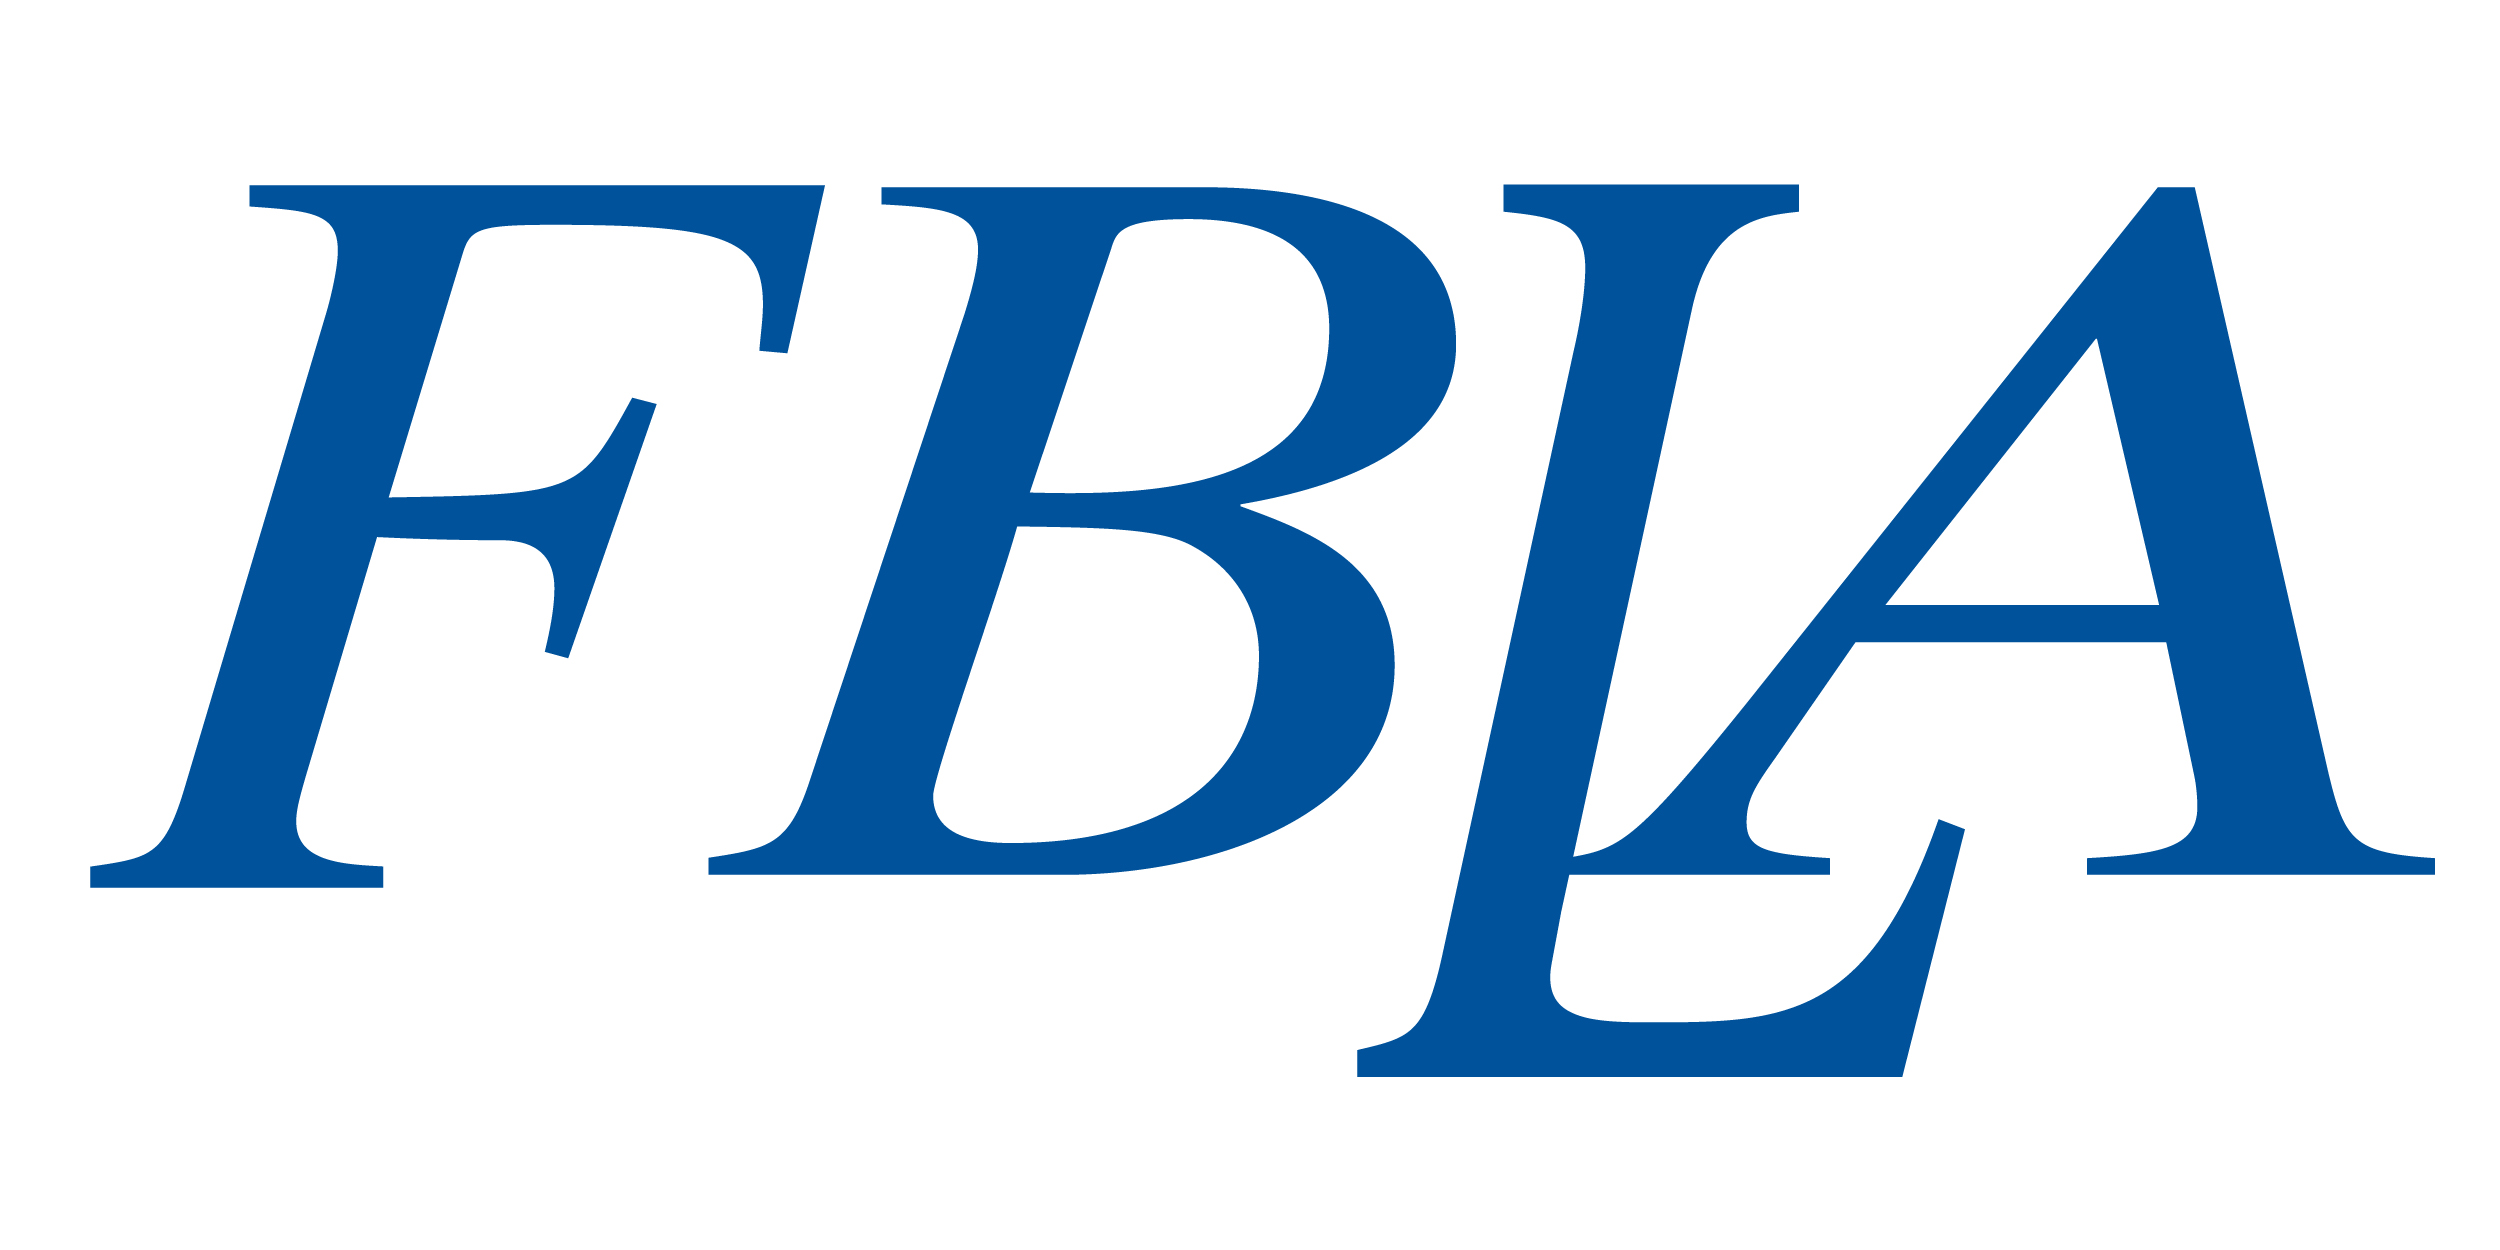 fbla logo coloring pages - photo#5